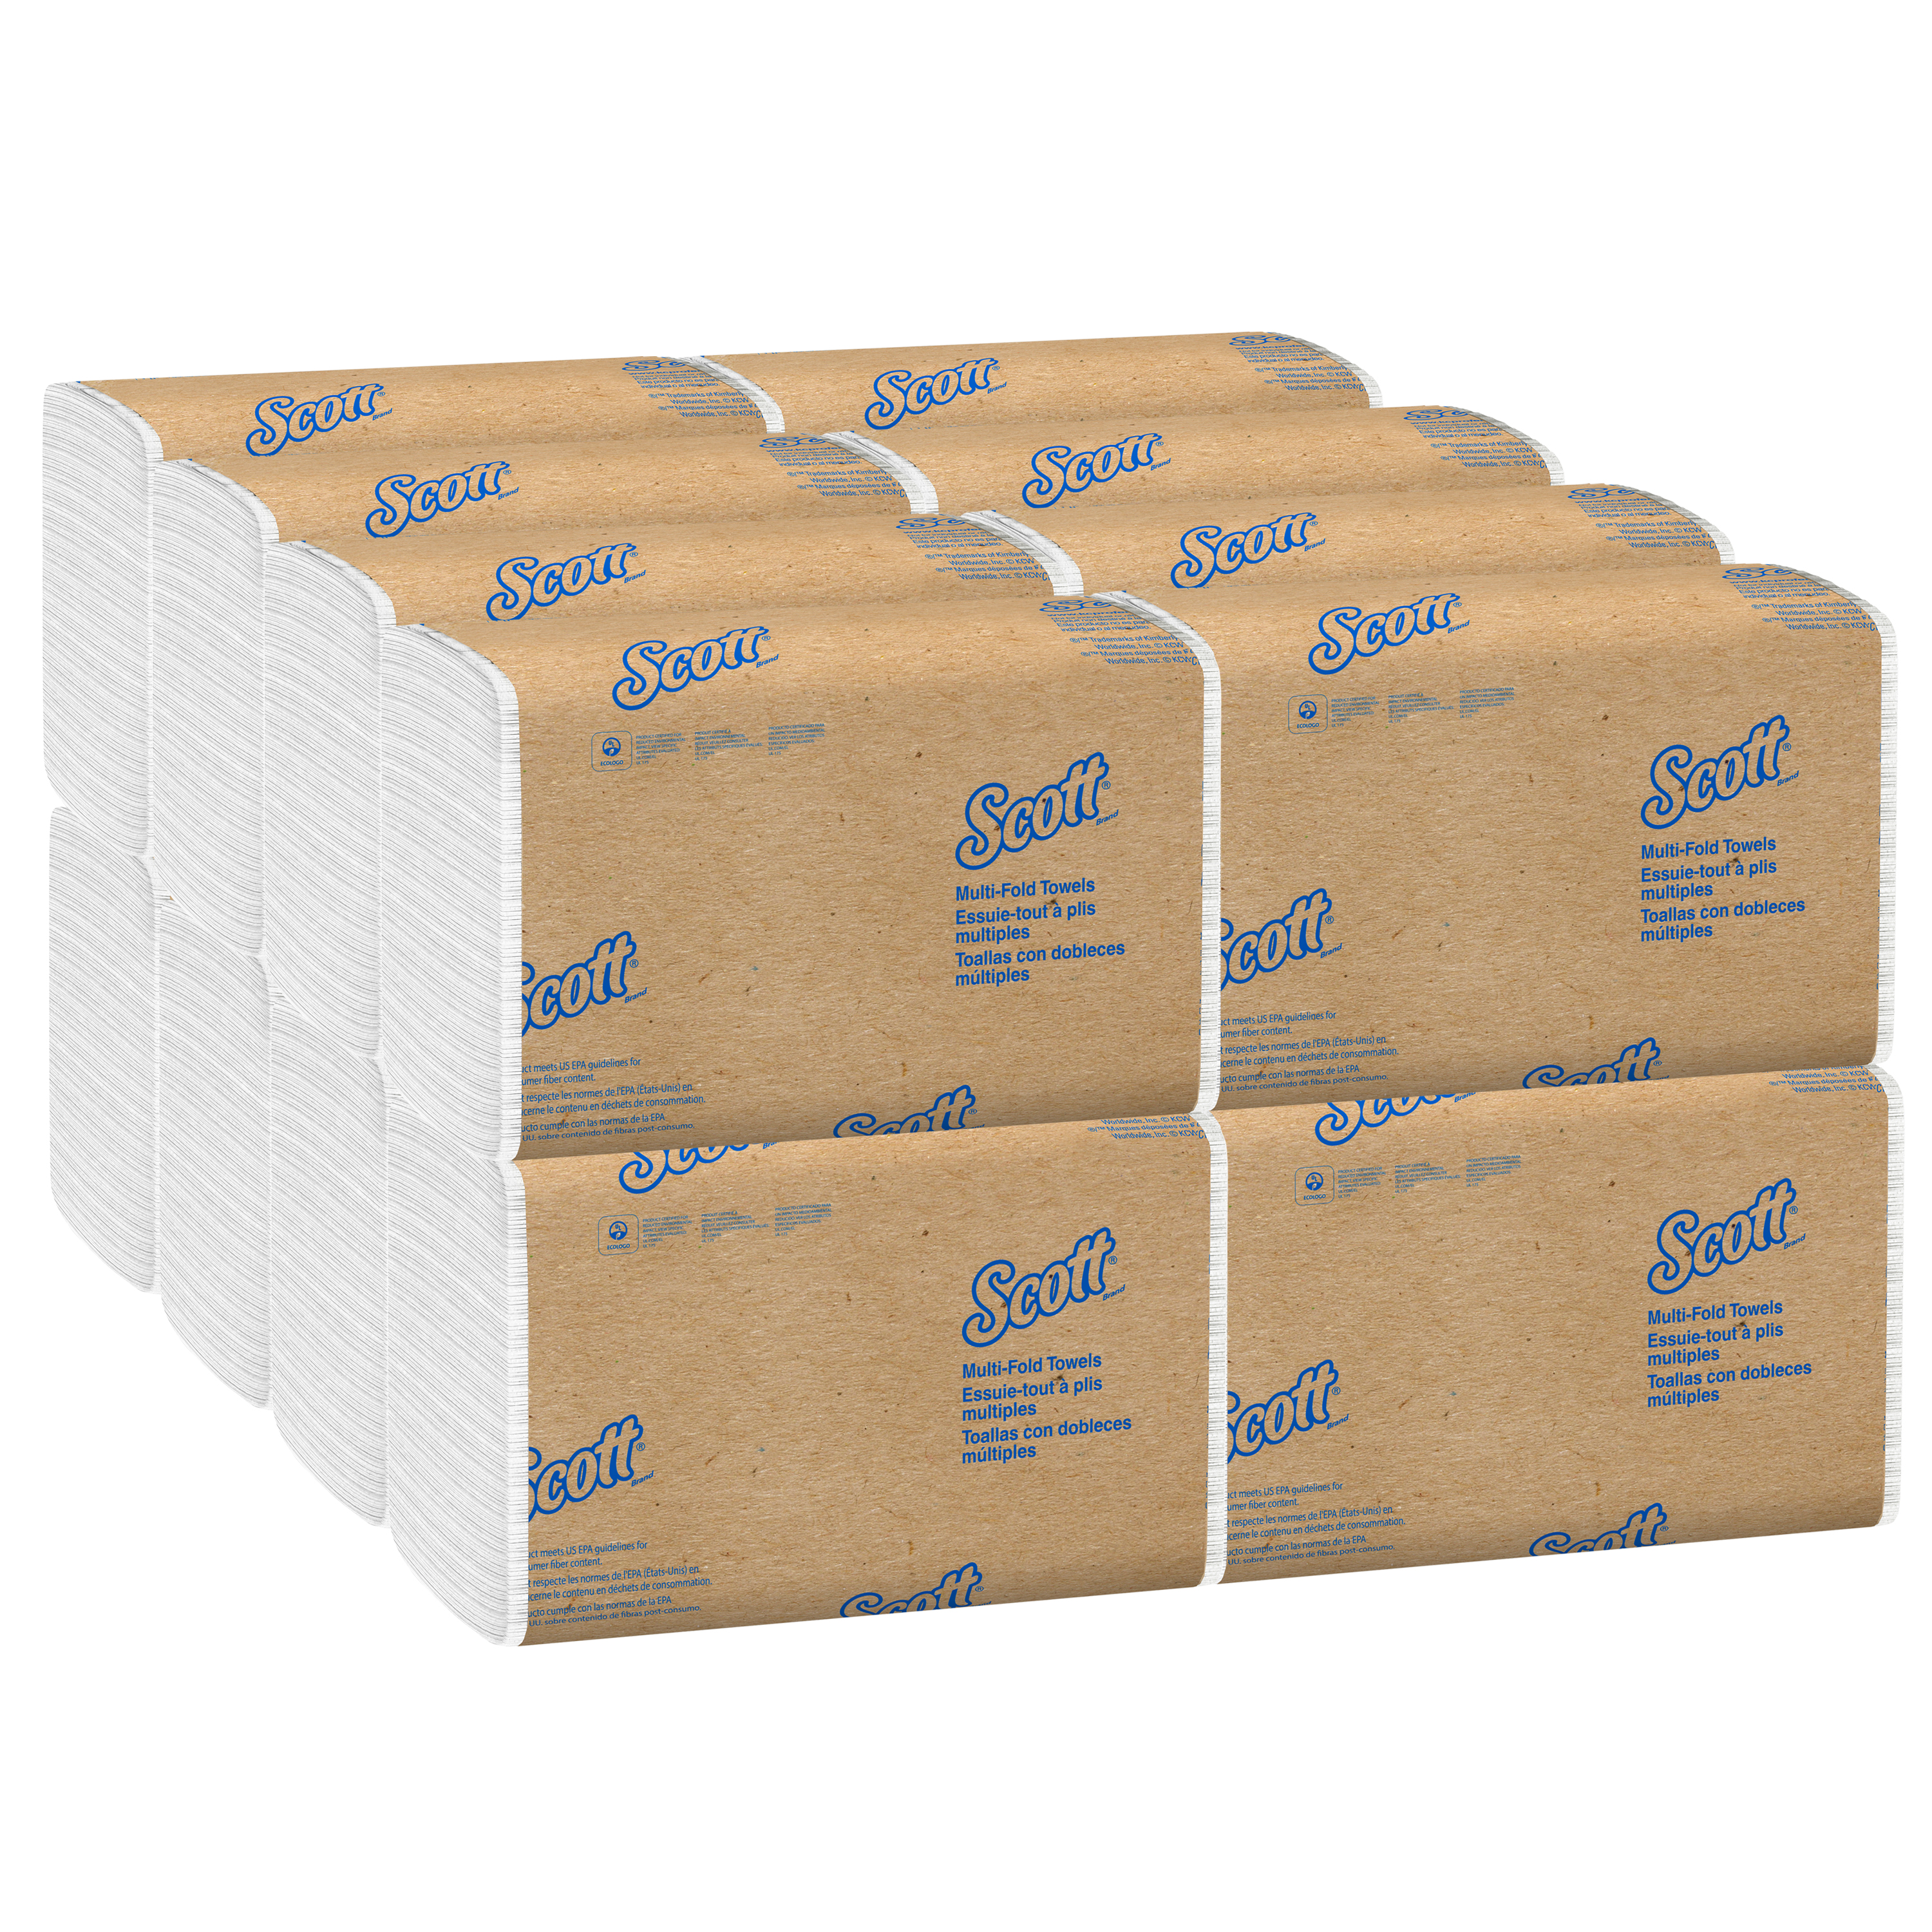 Picture of KC 1804 Premium Multi-Fold Towels, Absorbency Pockets, 9 1/5 x 9 2/5, 250/Pack, 16 Pack/Carton